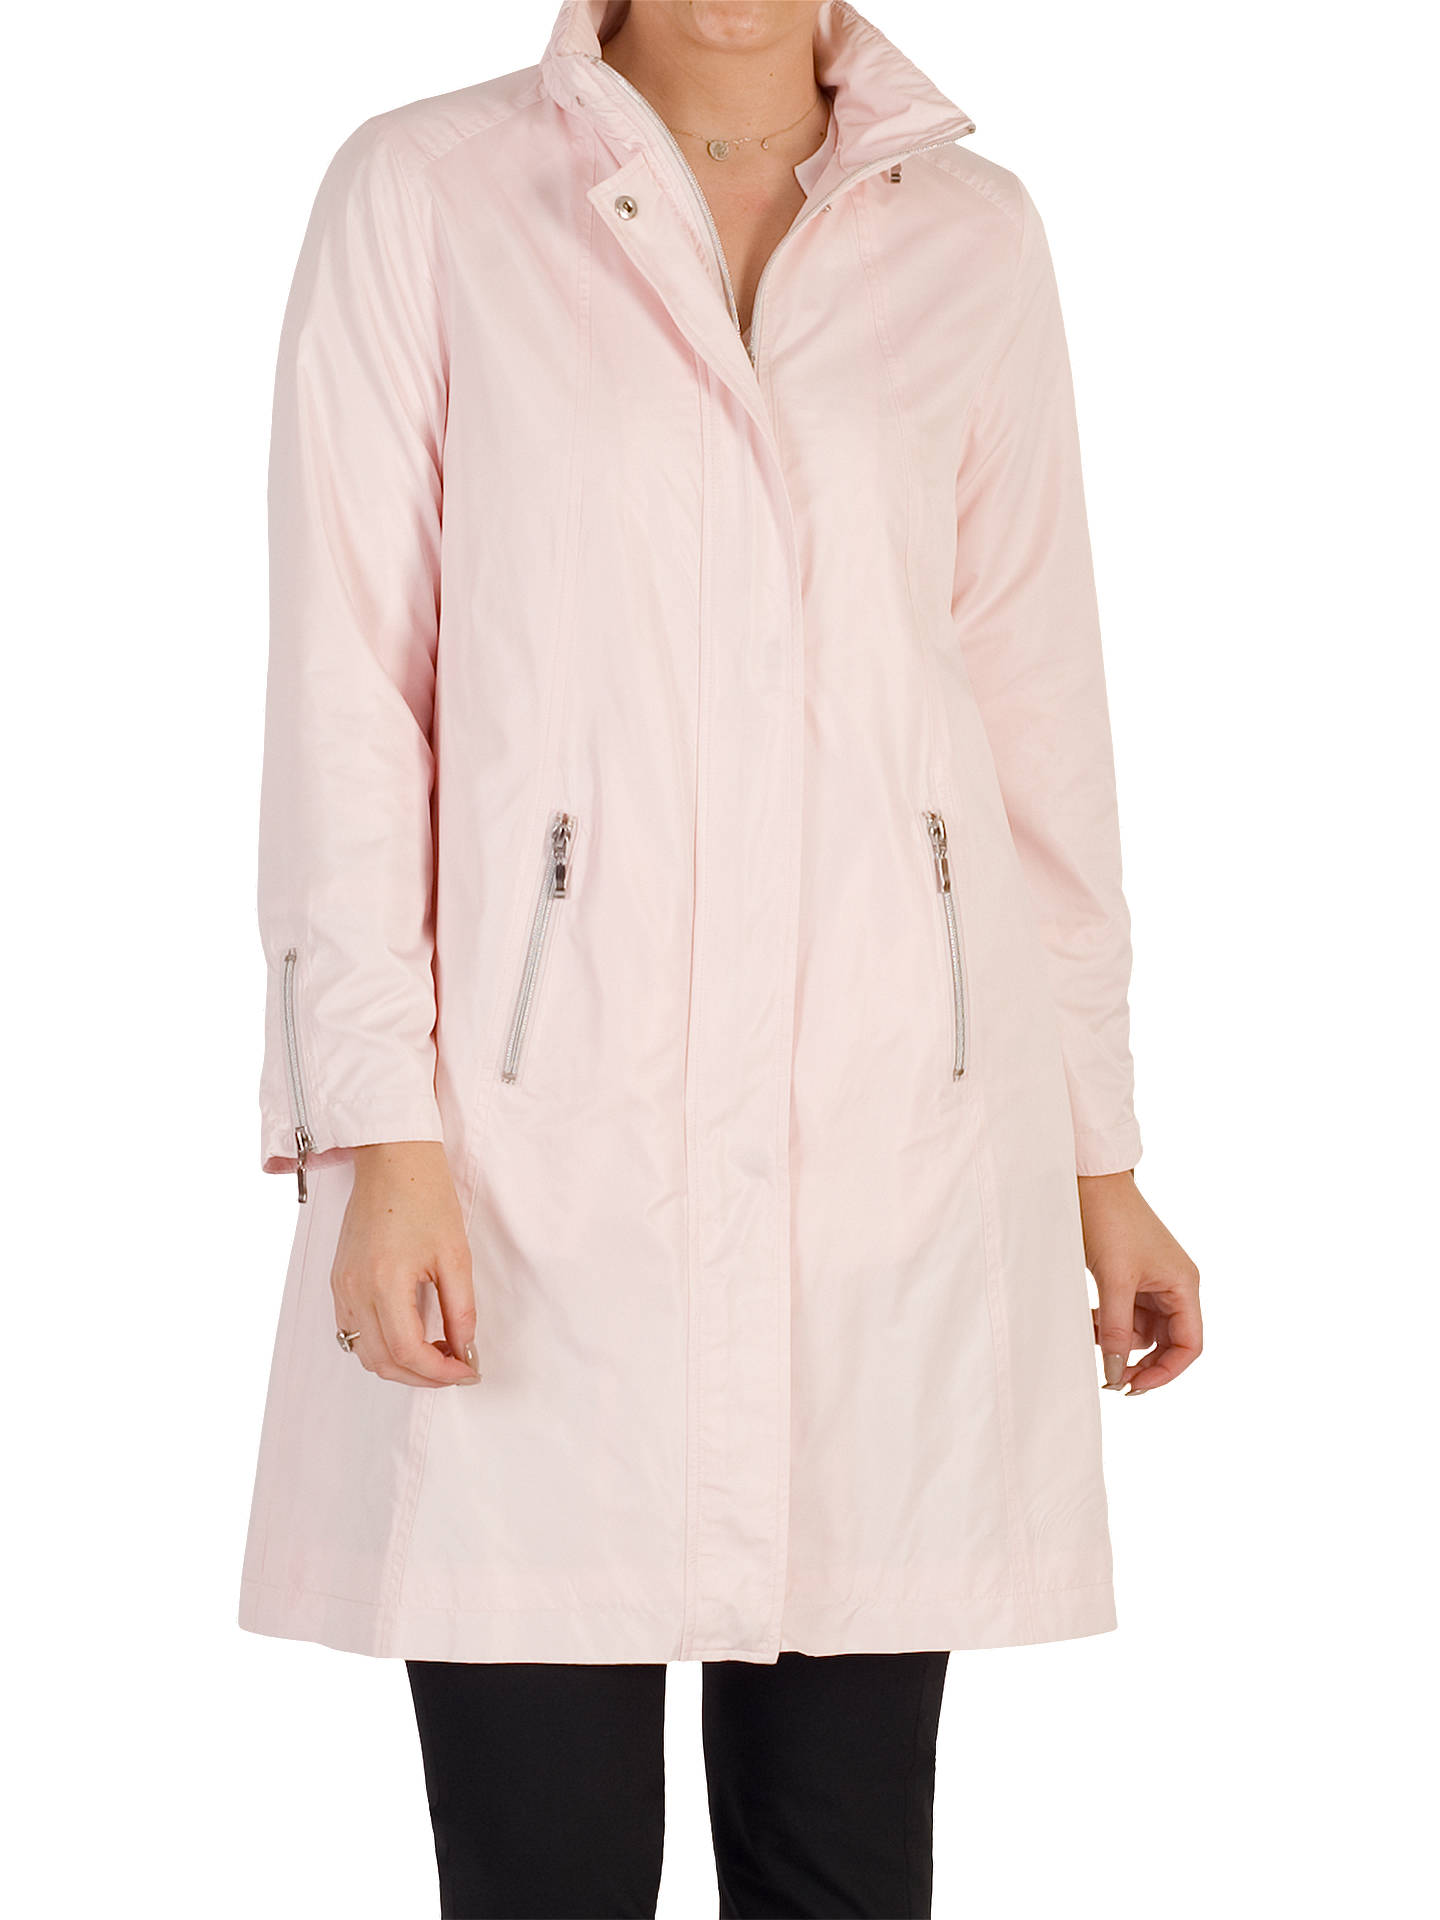 BuyChesca Ruched Collar Raincoat, Peony, 12 Online at johnlewis.com